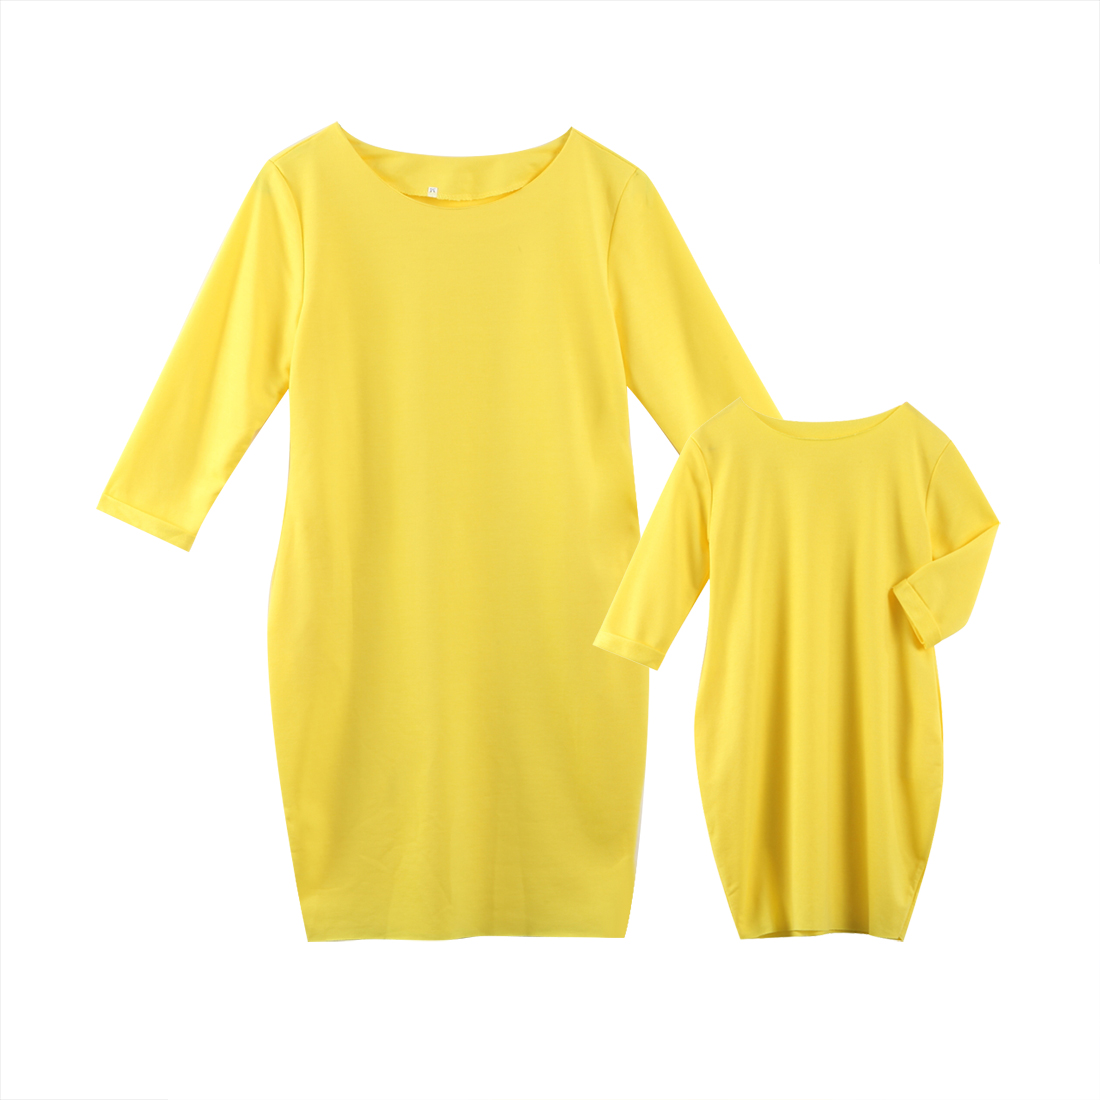 Mother Daughter Matching Dresses Yellow Summer Girls Women Half Sleeve Casual Loose Dresses Clothes Outfits Clothing